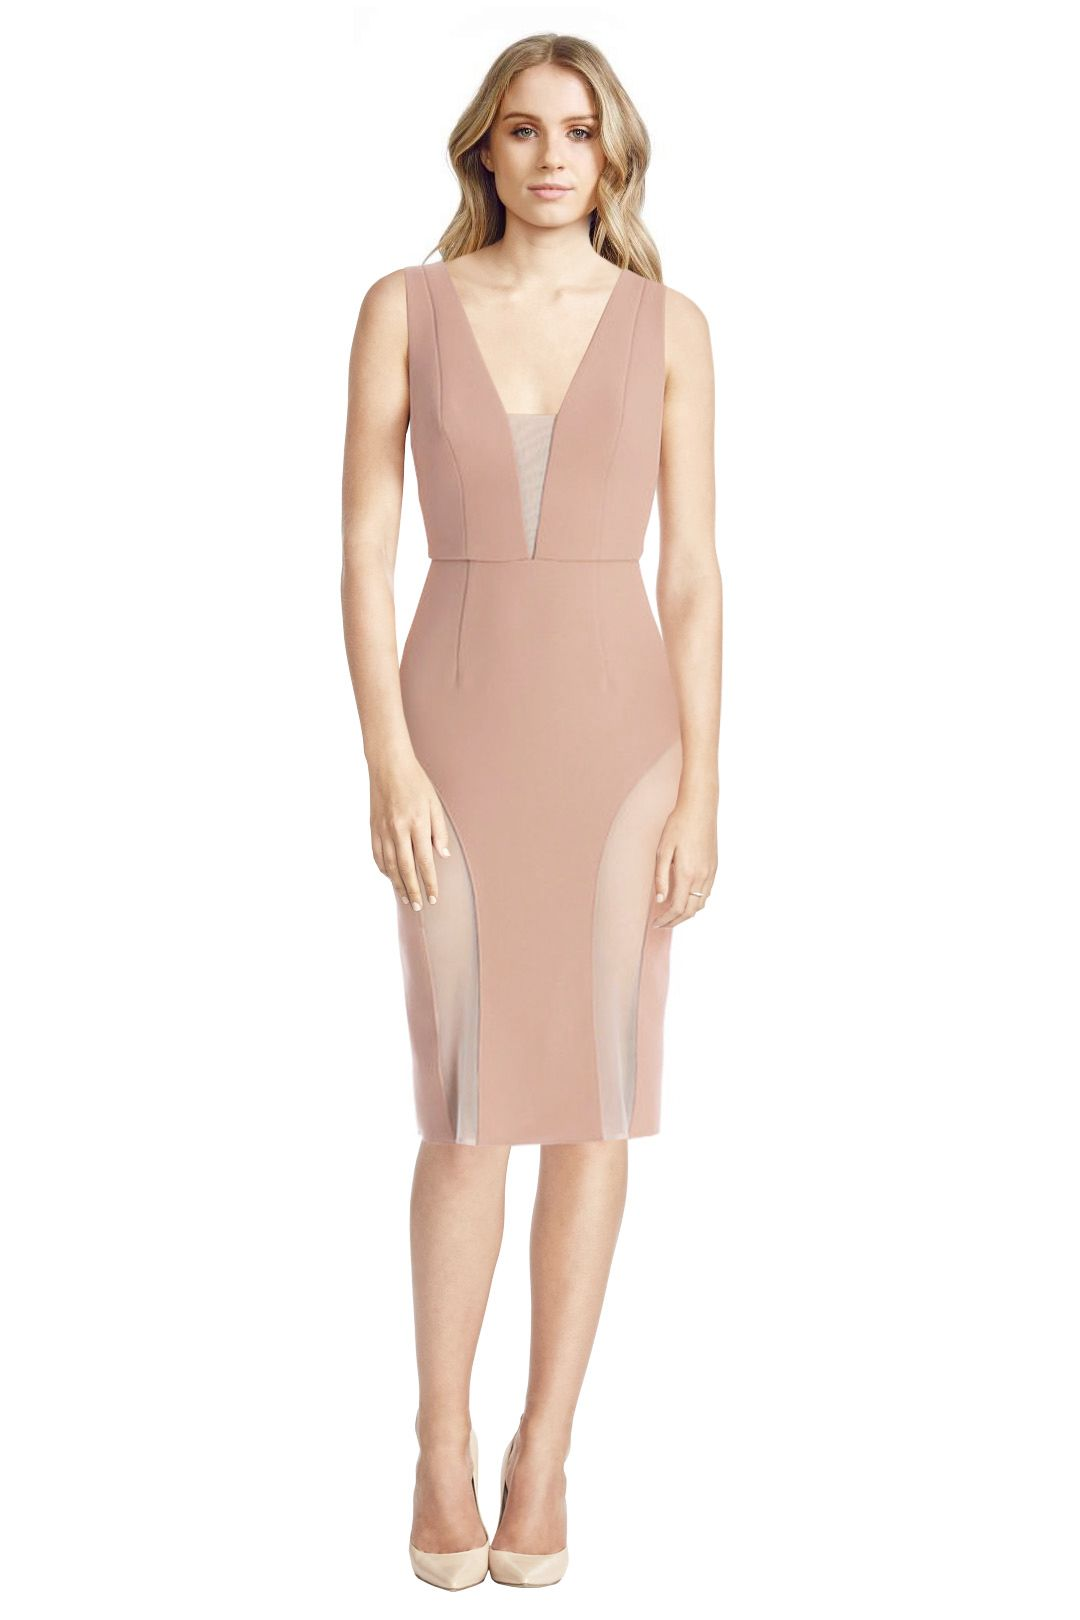 Yeojin Bae - Double Crepe Caterine Dress - Peach - Front